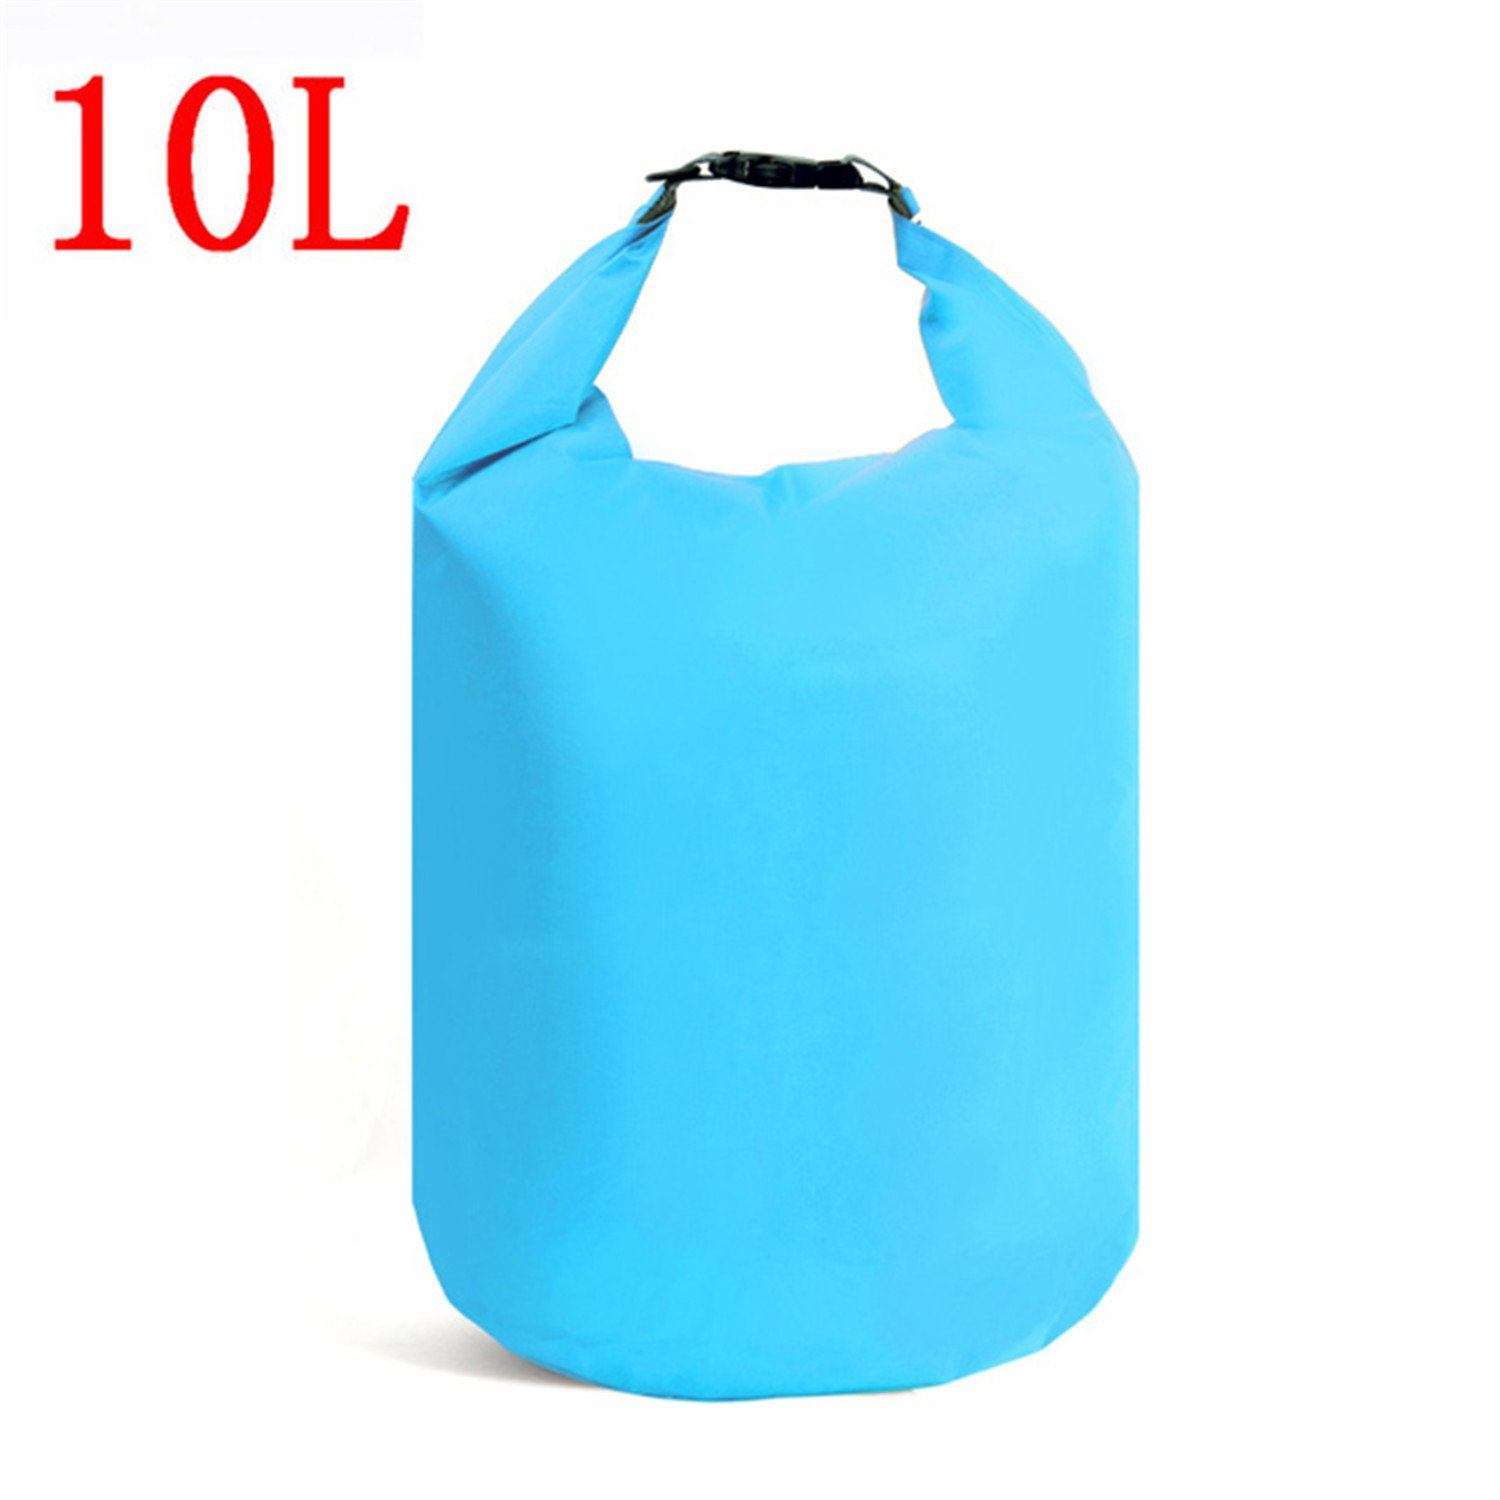 NeeKer Boating-Dry-Bags 5 Color 10L 20L Outdoor swimming Waterproof Bag Camping Rafting Storage Dry Bag with Adjustable Strap Hook